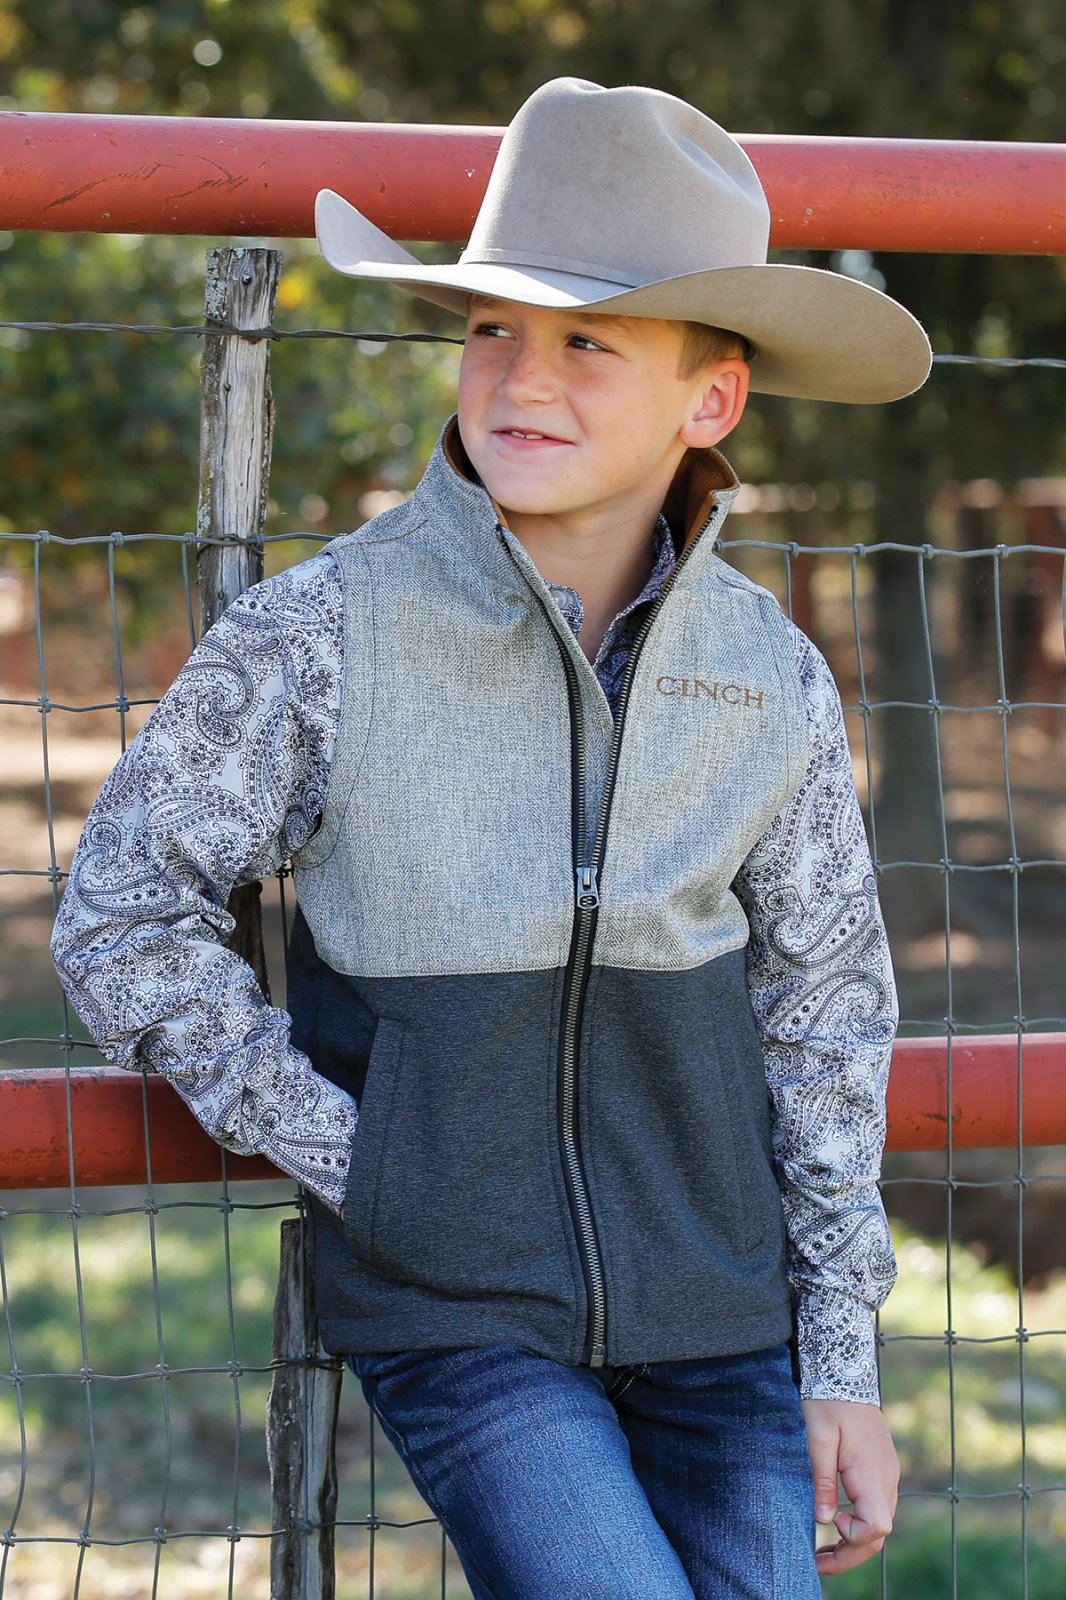 Boy's Bonded Vest from Cinch